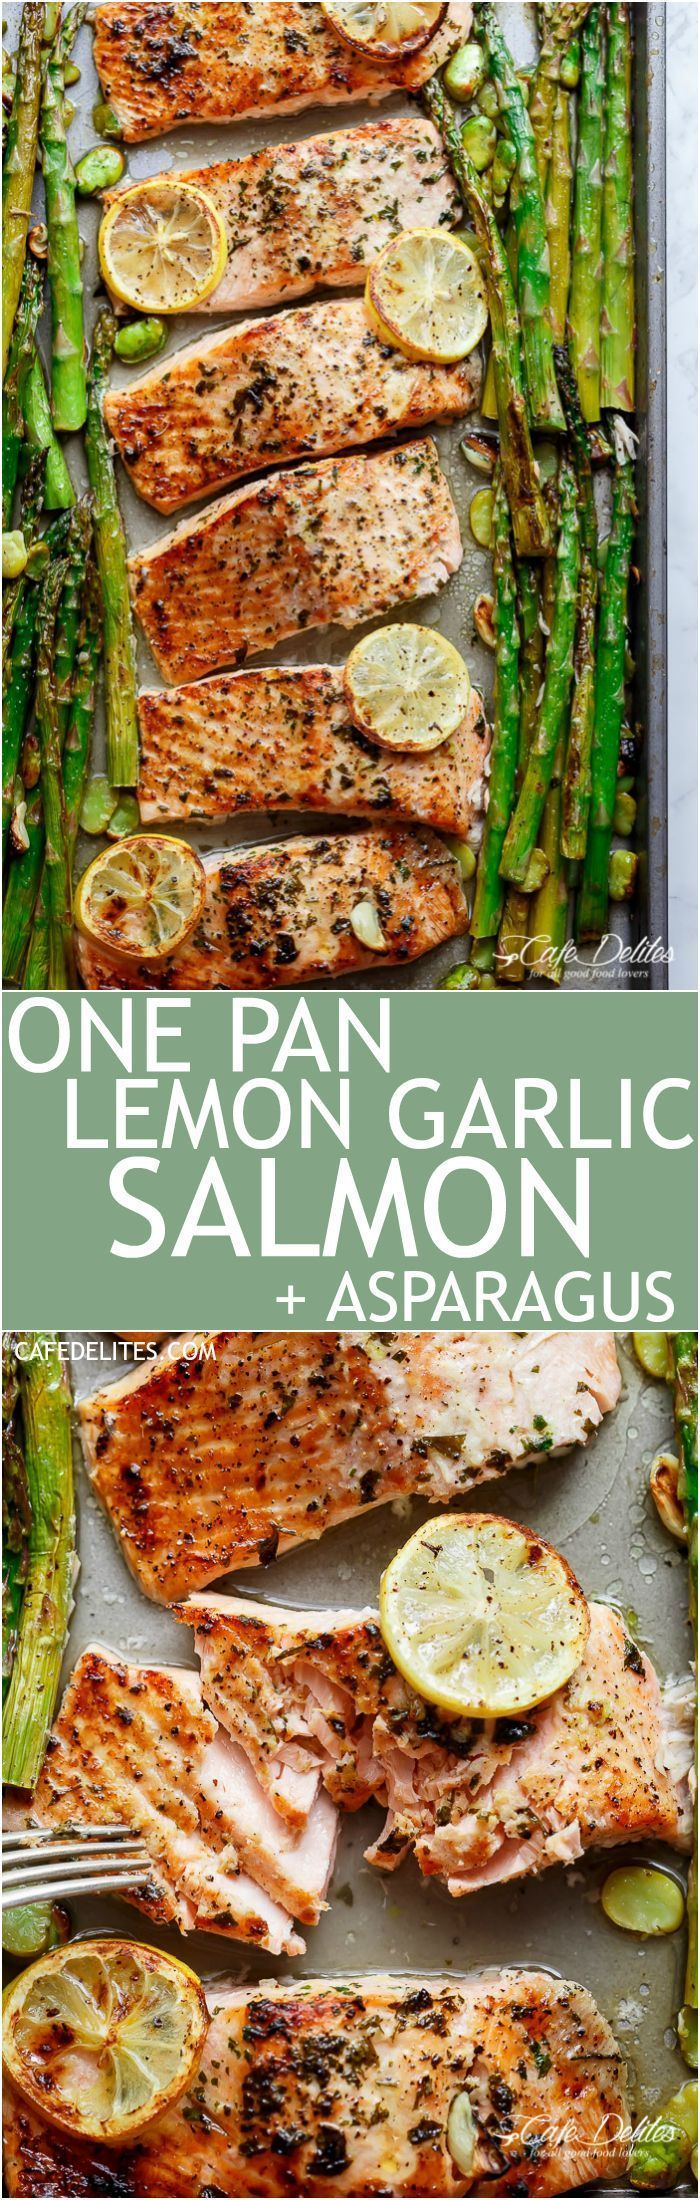 Lemon, garlic and parsley are infused in One Pan Lemon Garlic Baked Salmon + Asparagus ready in only 10 minutes without any marinading! This healthy recipe is paleo, low carb and keto and it tastes amazing.